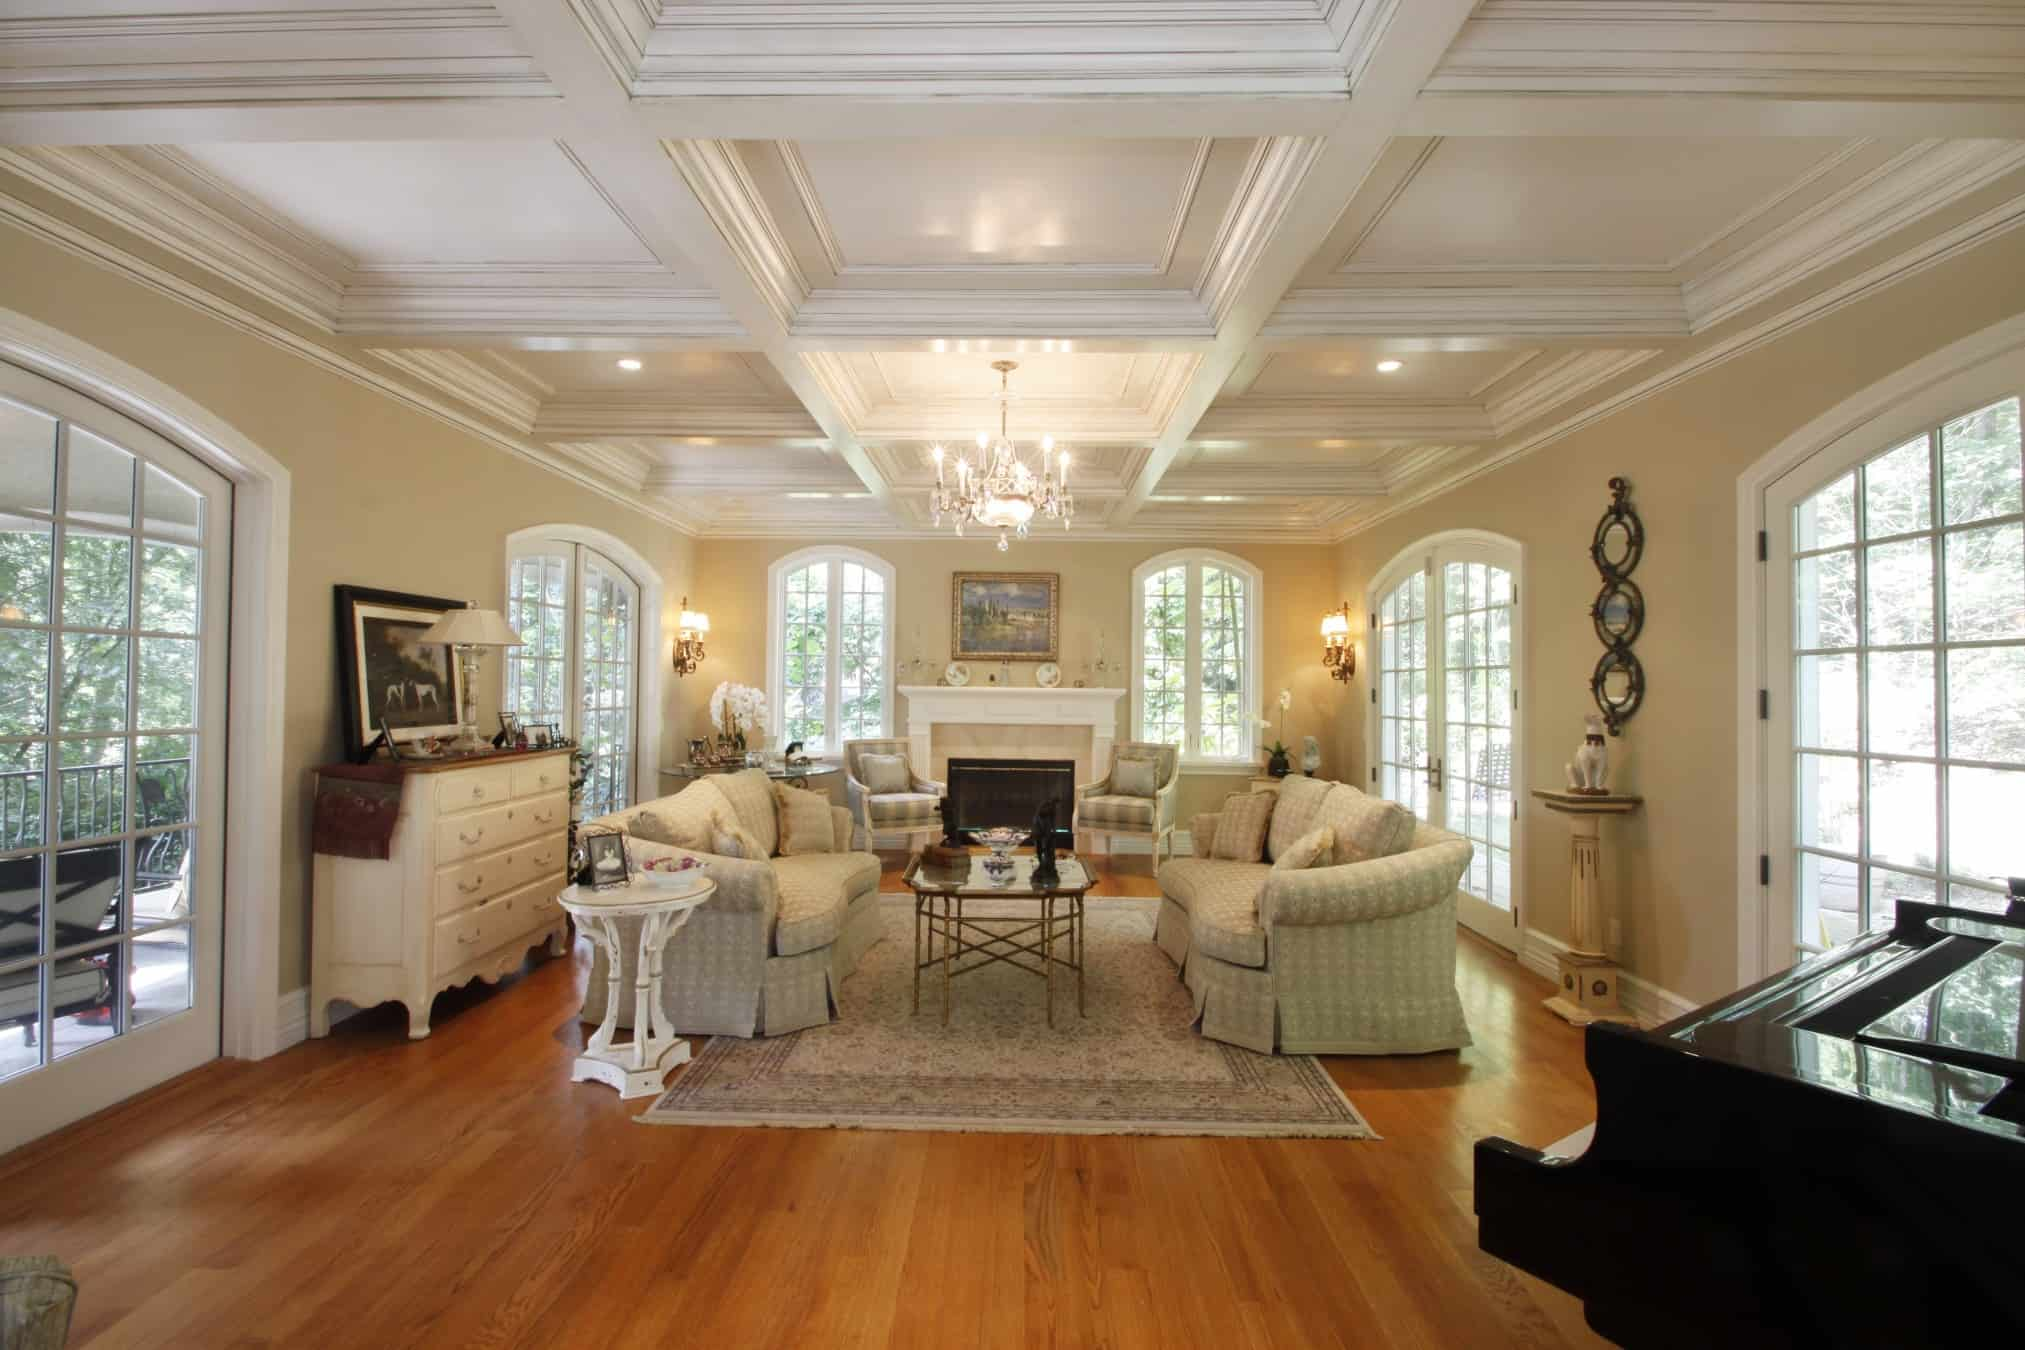 Design Coffered Ceiling Ideas ceiling ideas box beam coffered systems shallow kits